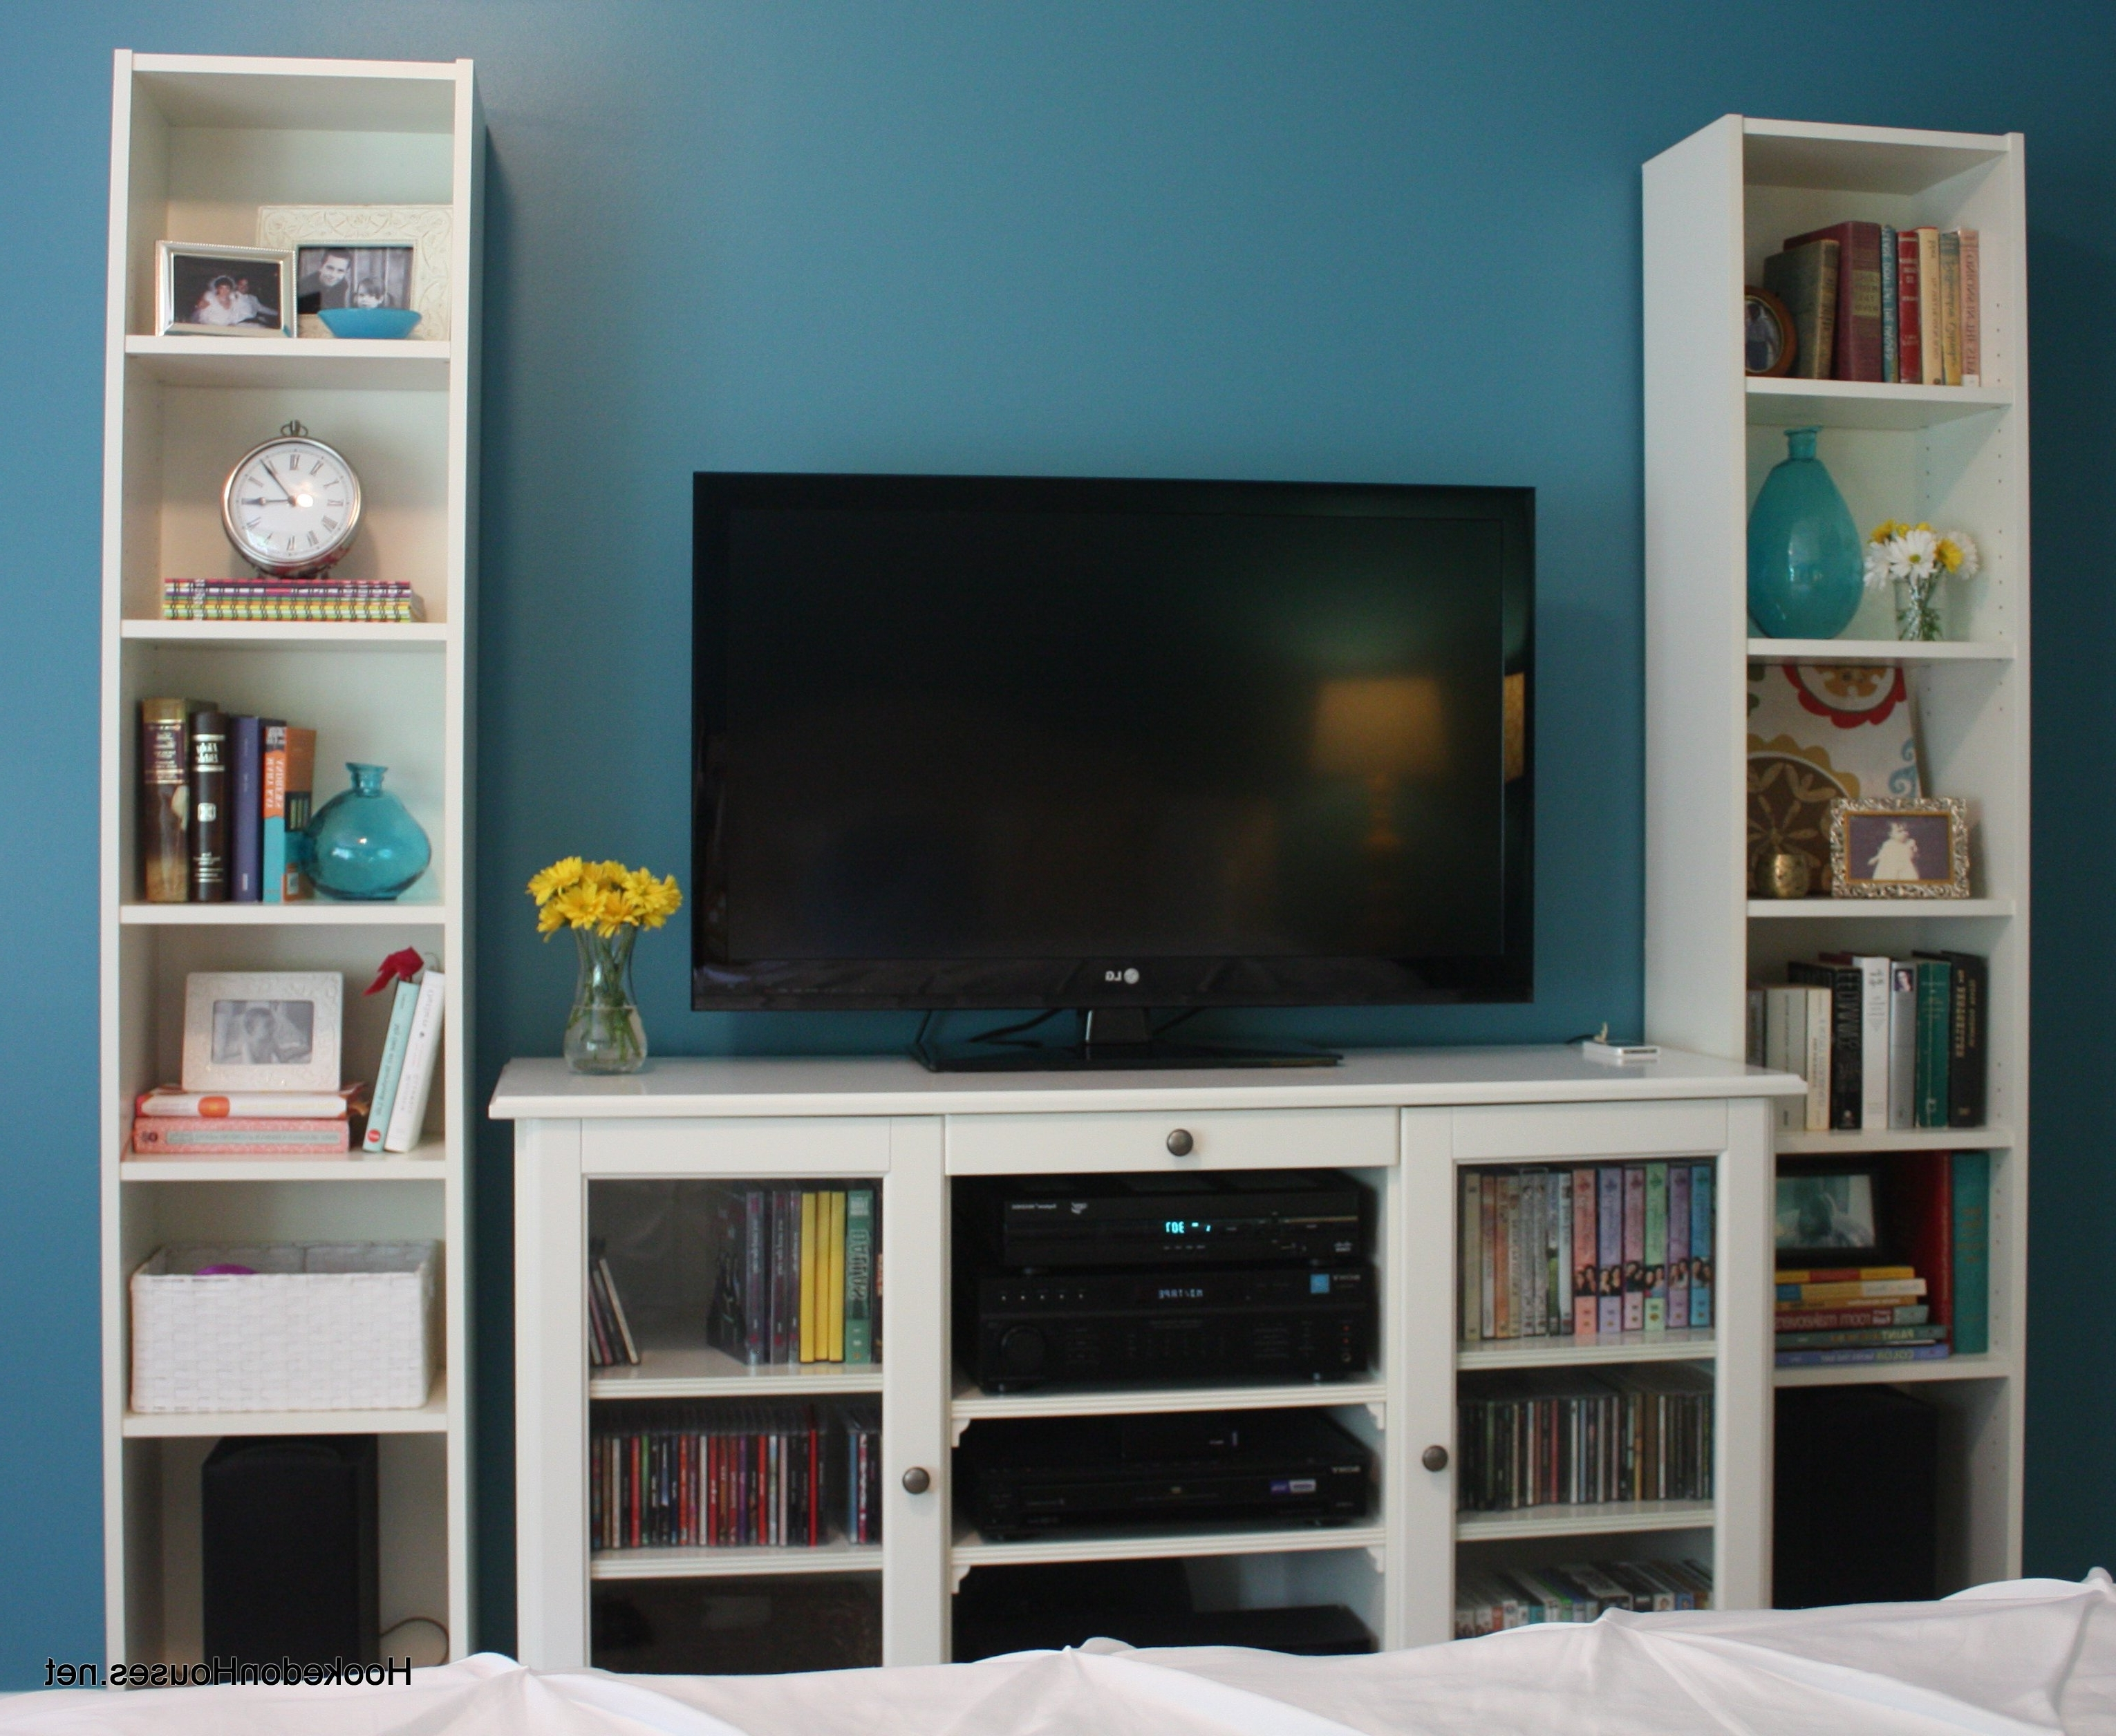 Picture 2 Of 6 – Tv Stand With Bookshelves Awesome Tv Cabinet And Regarding Favorite Tv Stand Bookcases (View 3 of 15)